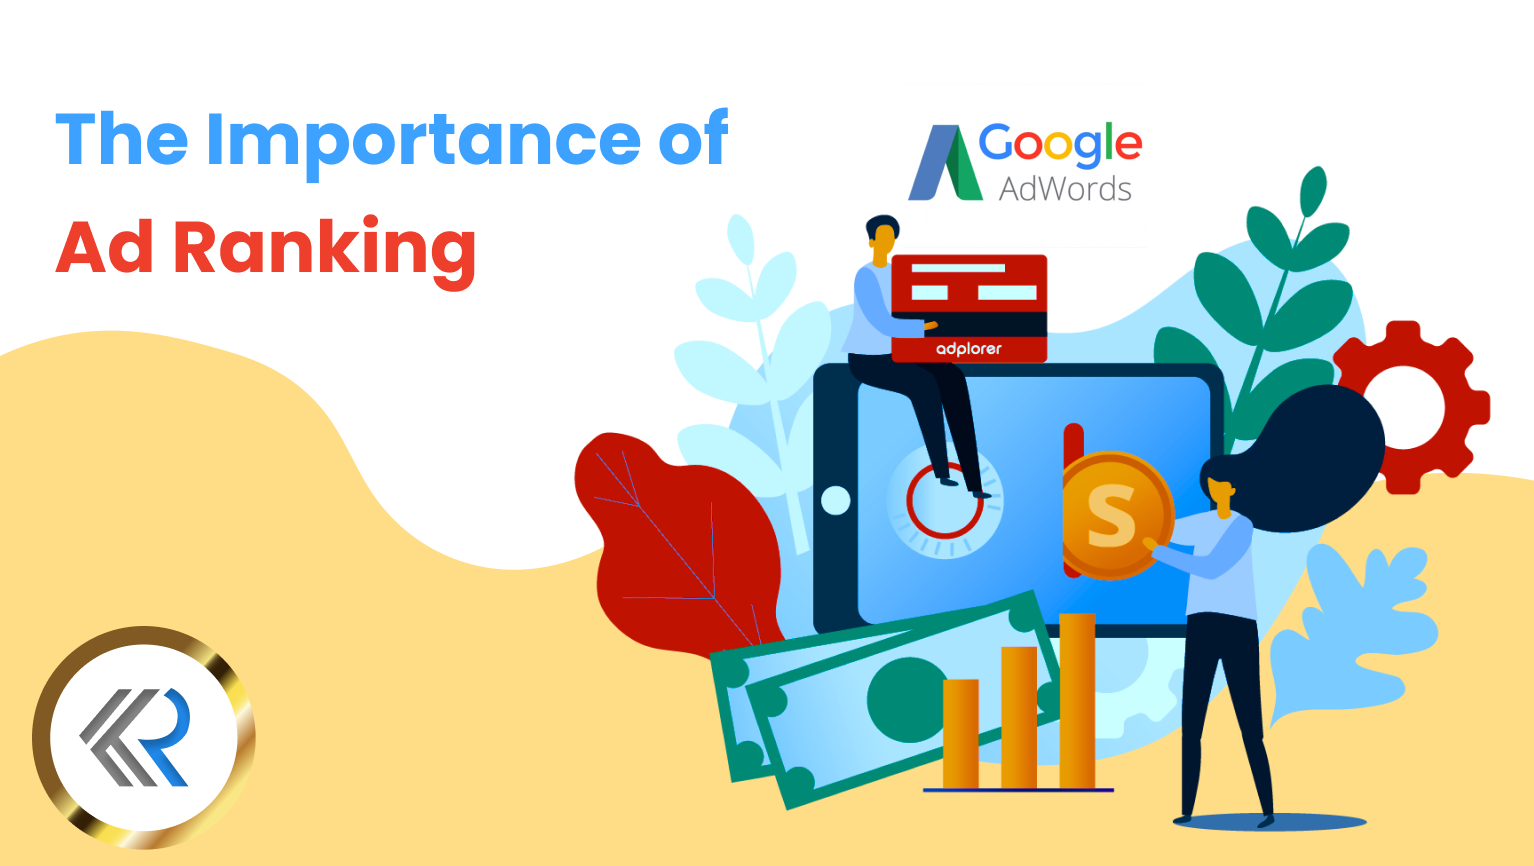 Importance of AD Ranking